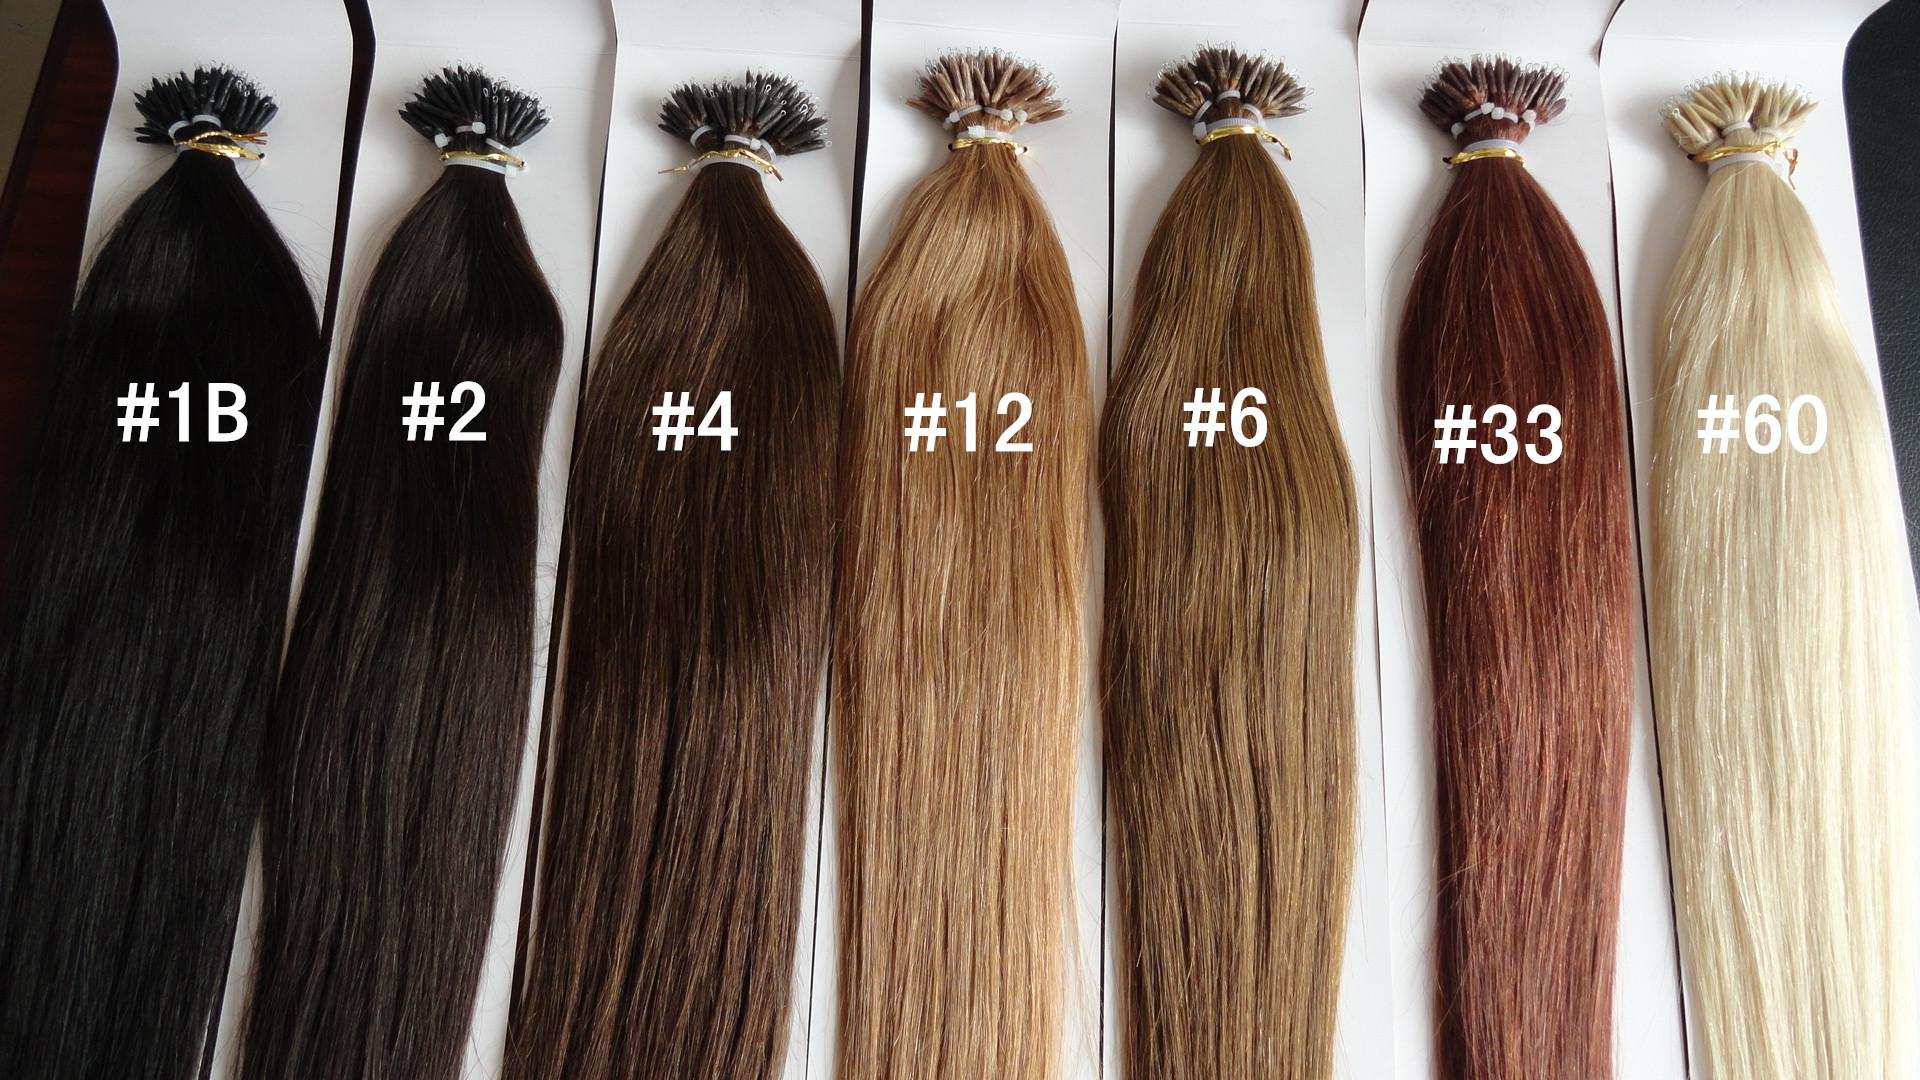 6a grade nano ring hair extension 100 brazilian human virgin remy 6a grade nano ring hair extension 100 brazilian human virgin remy hair 1b246123360 pre bonded hair 300glot factory wholesale pmusecretfo Choice Image